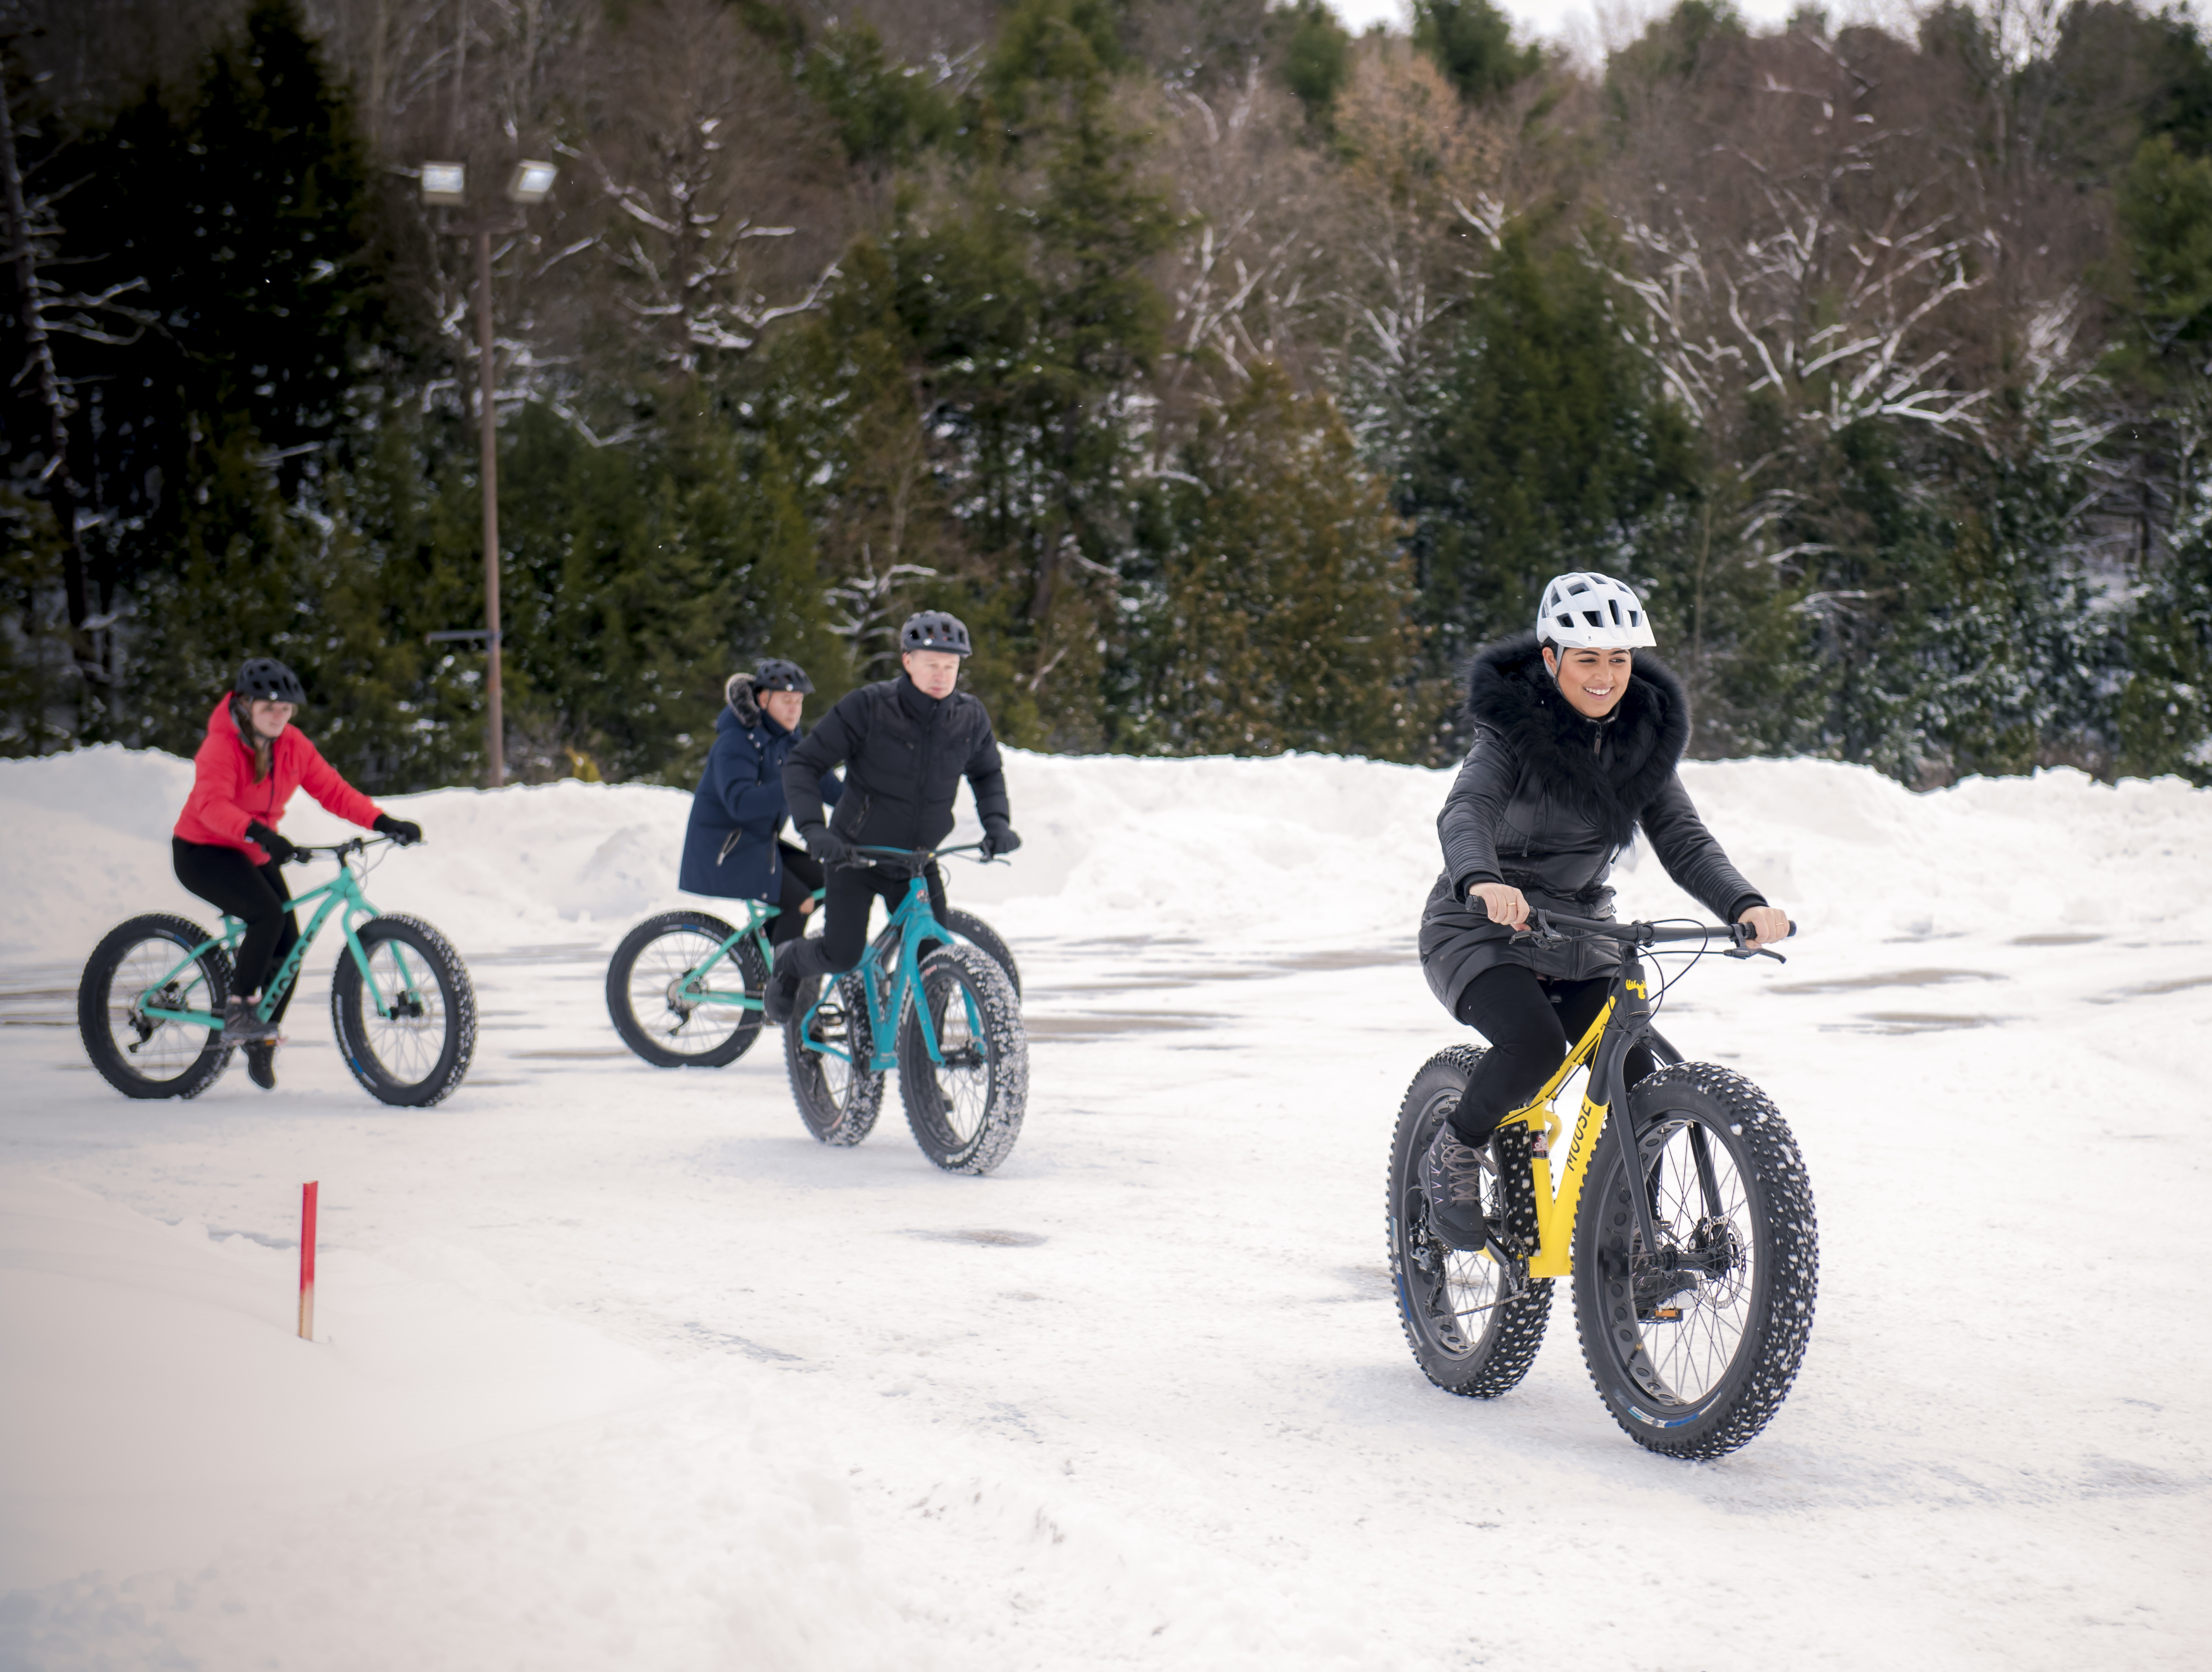 Fat biking is a fun way to explore some of Muskoka's trails in the winter time, and companies like Livoutside allow for guided or self-guided adventure.